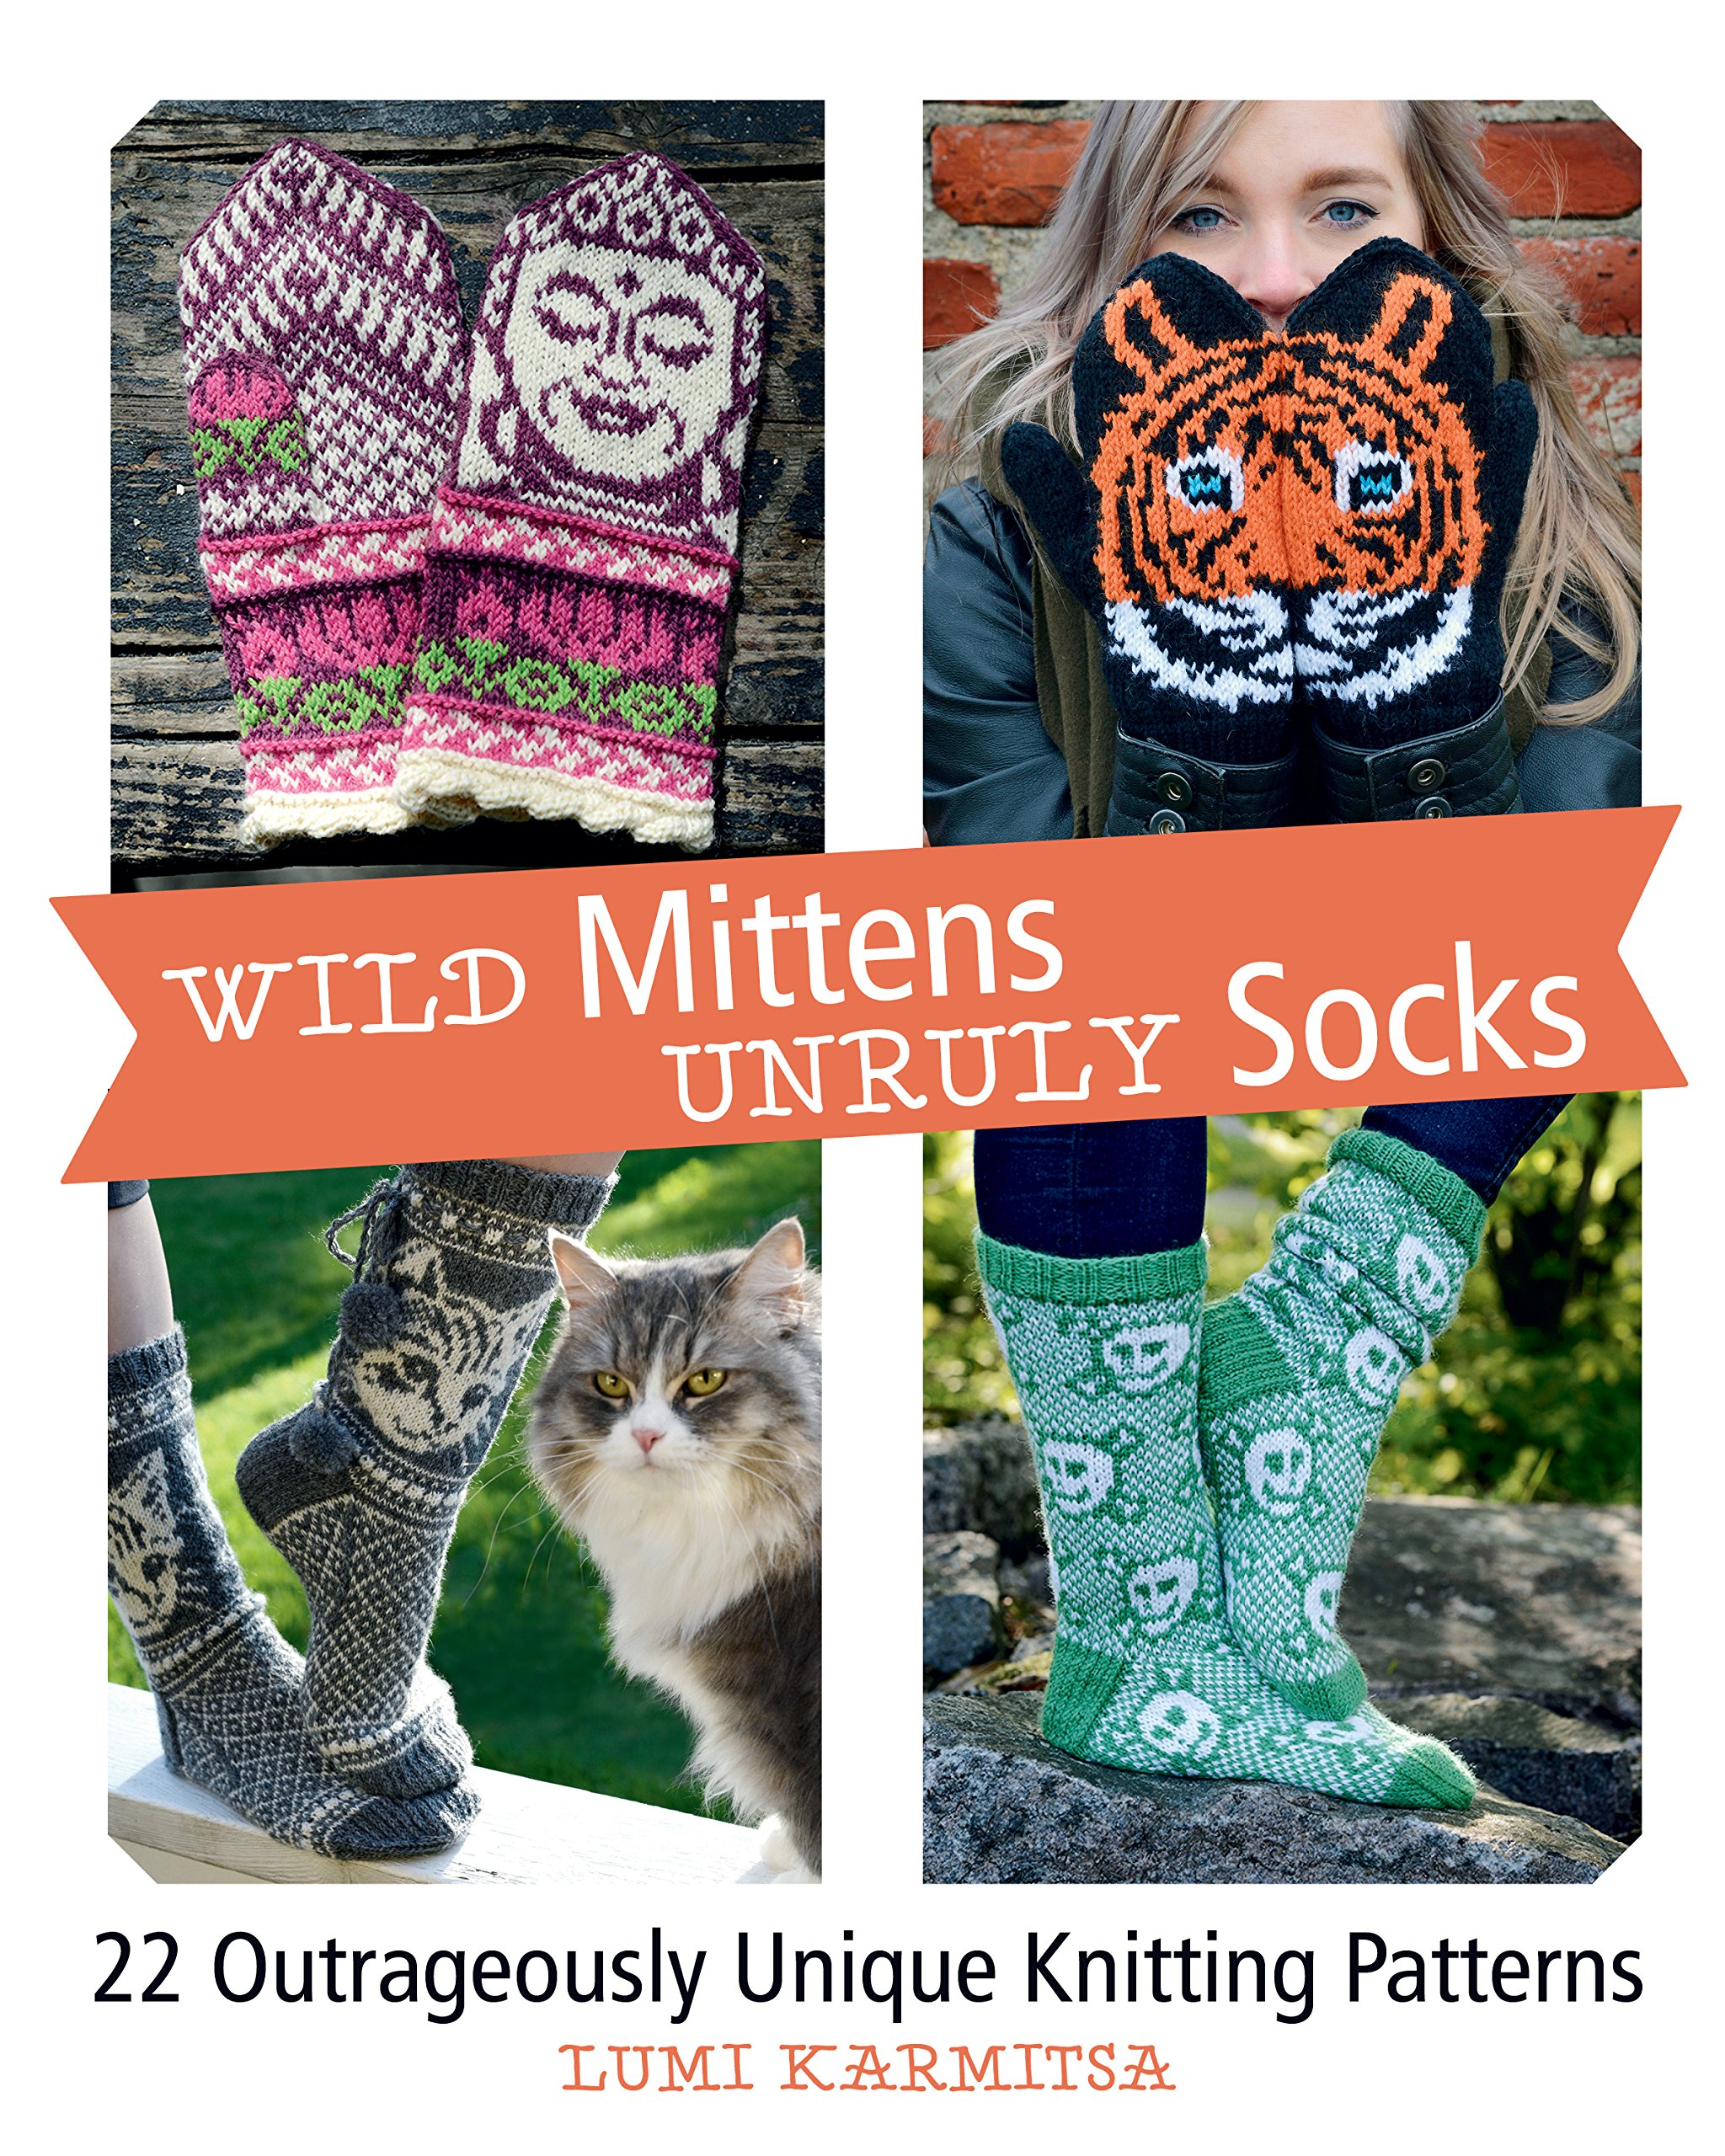 Wild Mittens and Unruly Socks: 22 Outrageously Unique Knitting Patterns